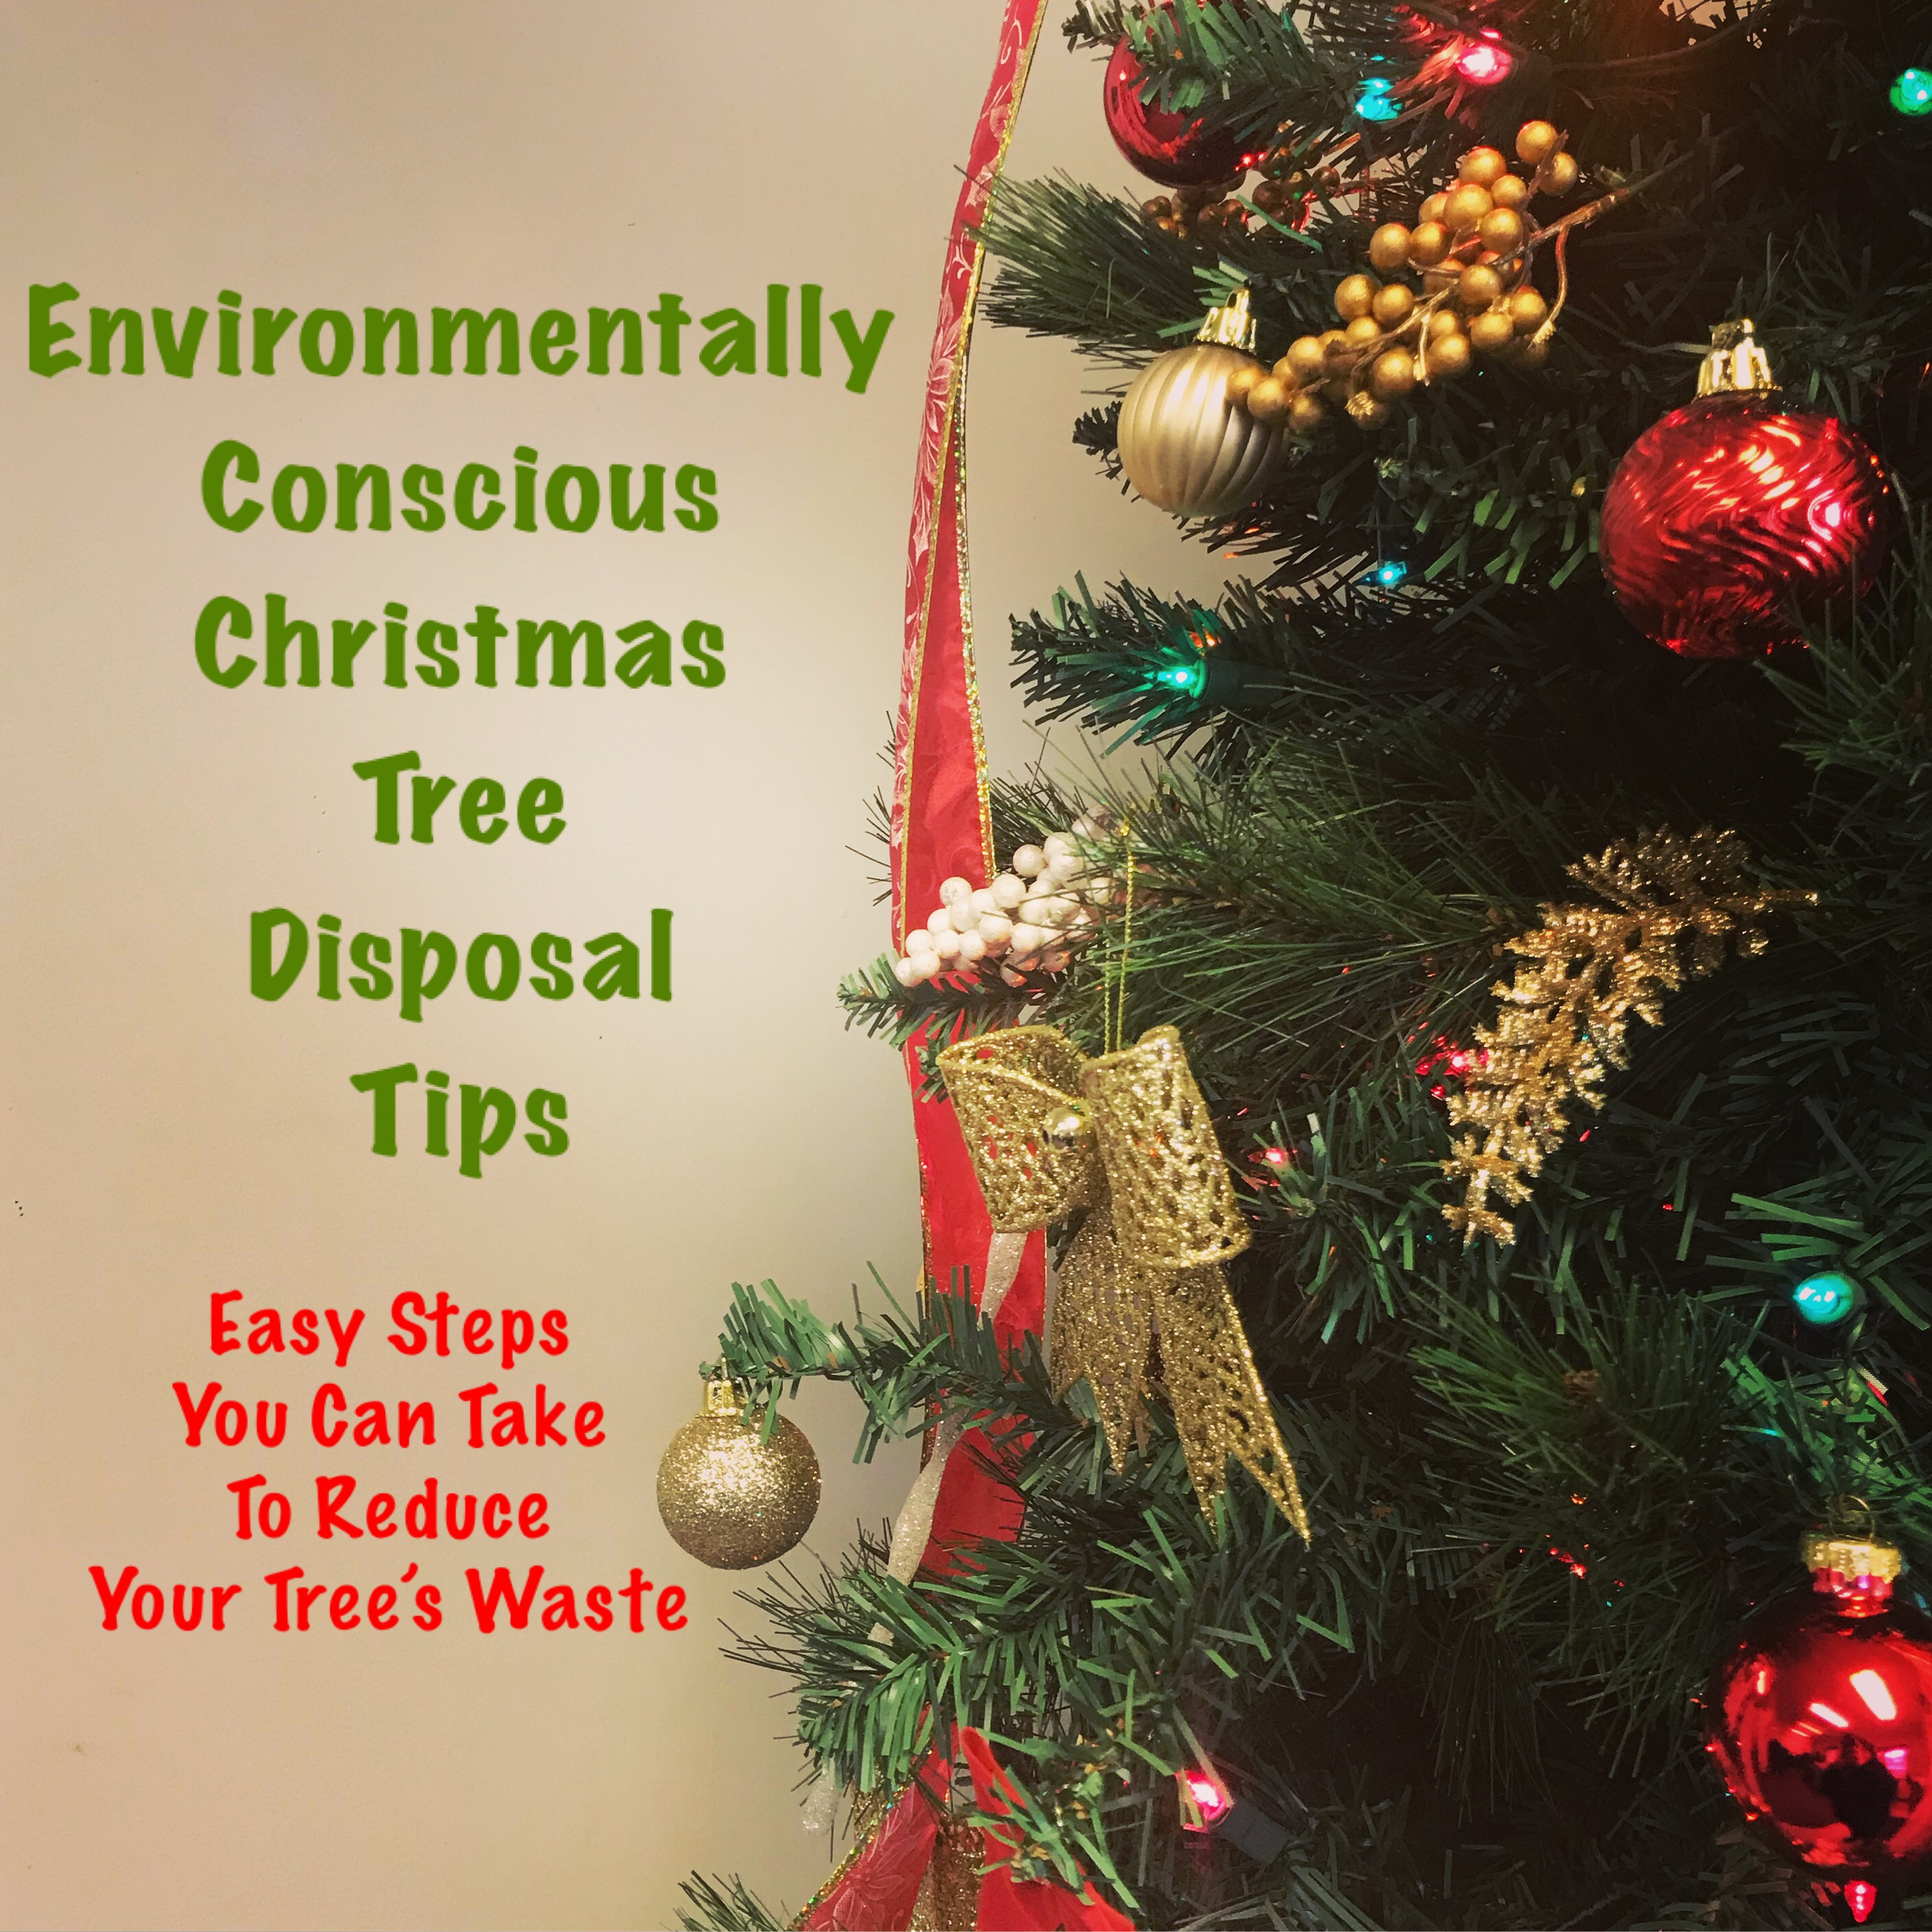 Environmentally Conscious Christmas Tree Disposal Tips.jpg